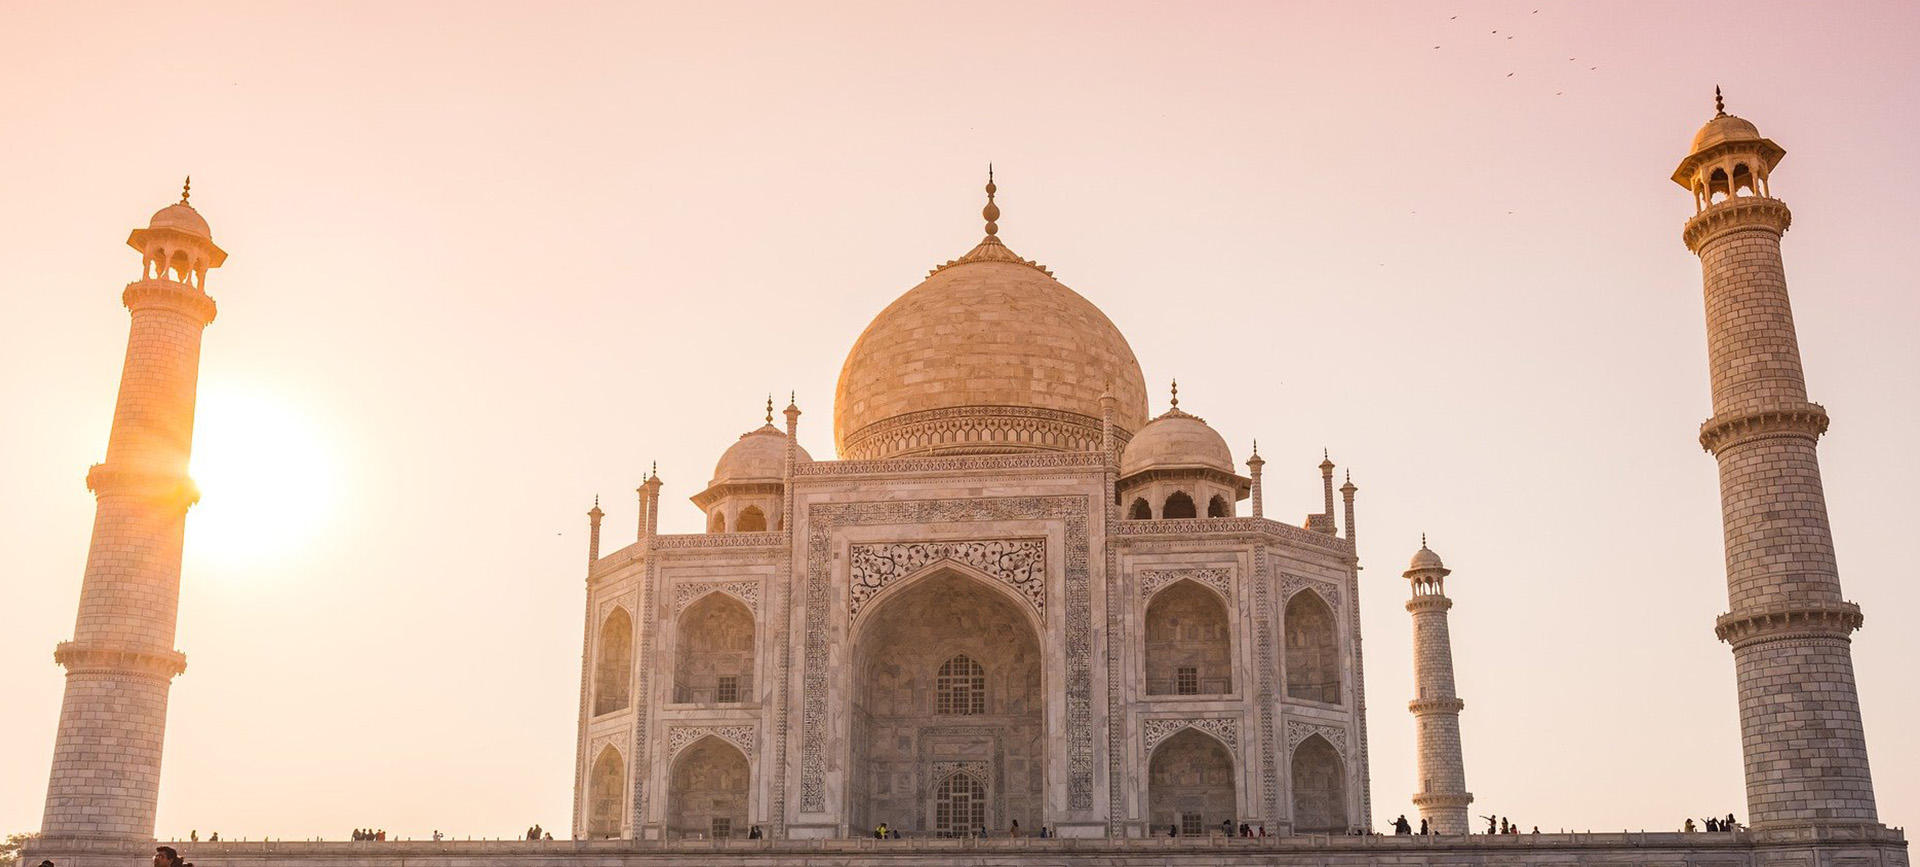 60 helpful tips for Travellers to visit India